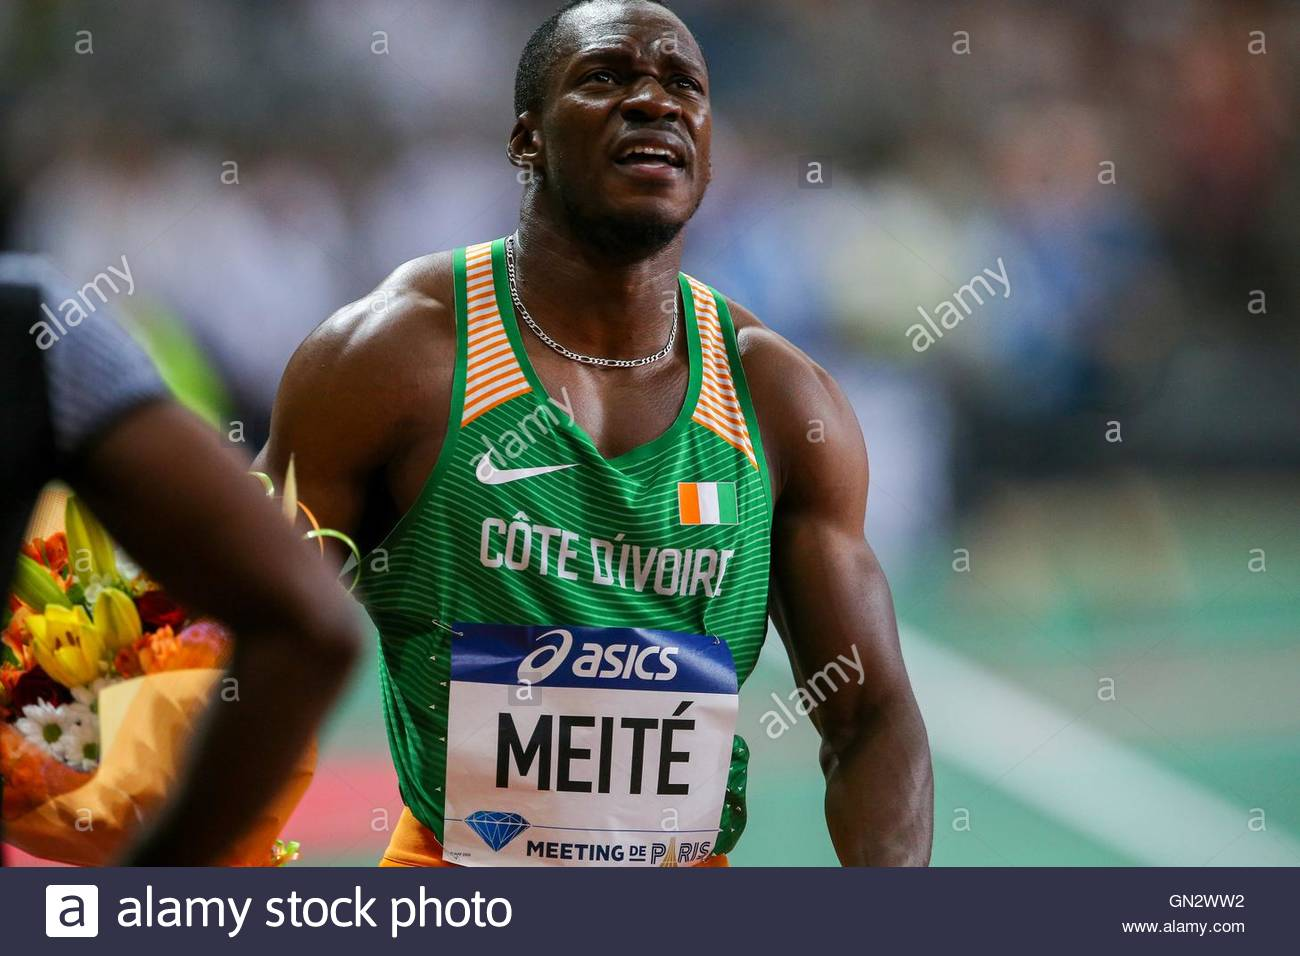 Saint Denis, France. 27th Aug, 2016. Ivory Coast's Ben Youssef Meite reacts after the men's 100m at the - Stock Image